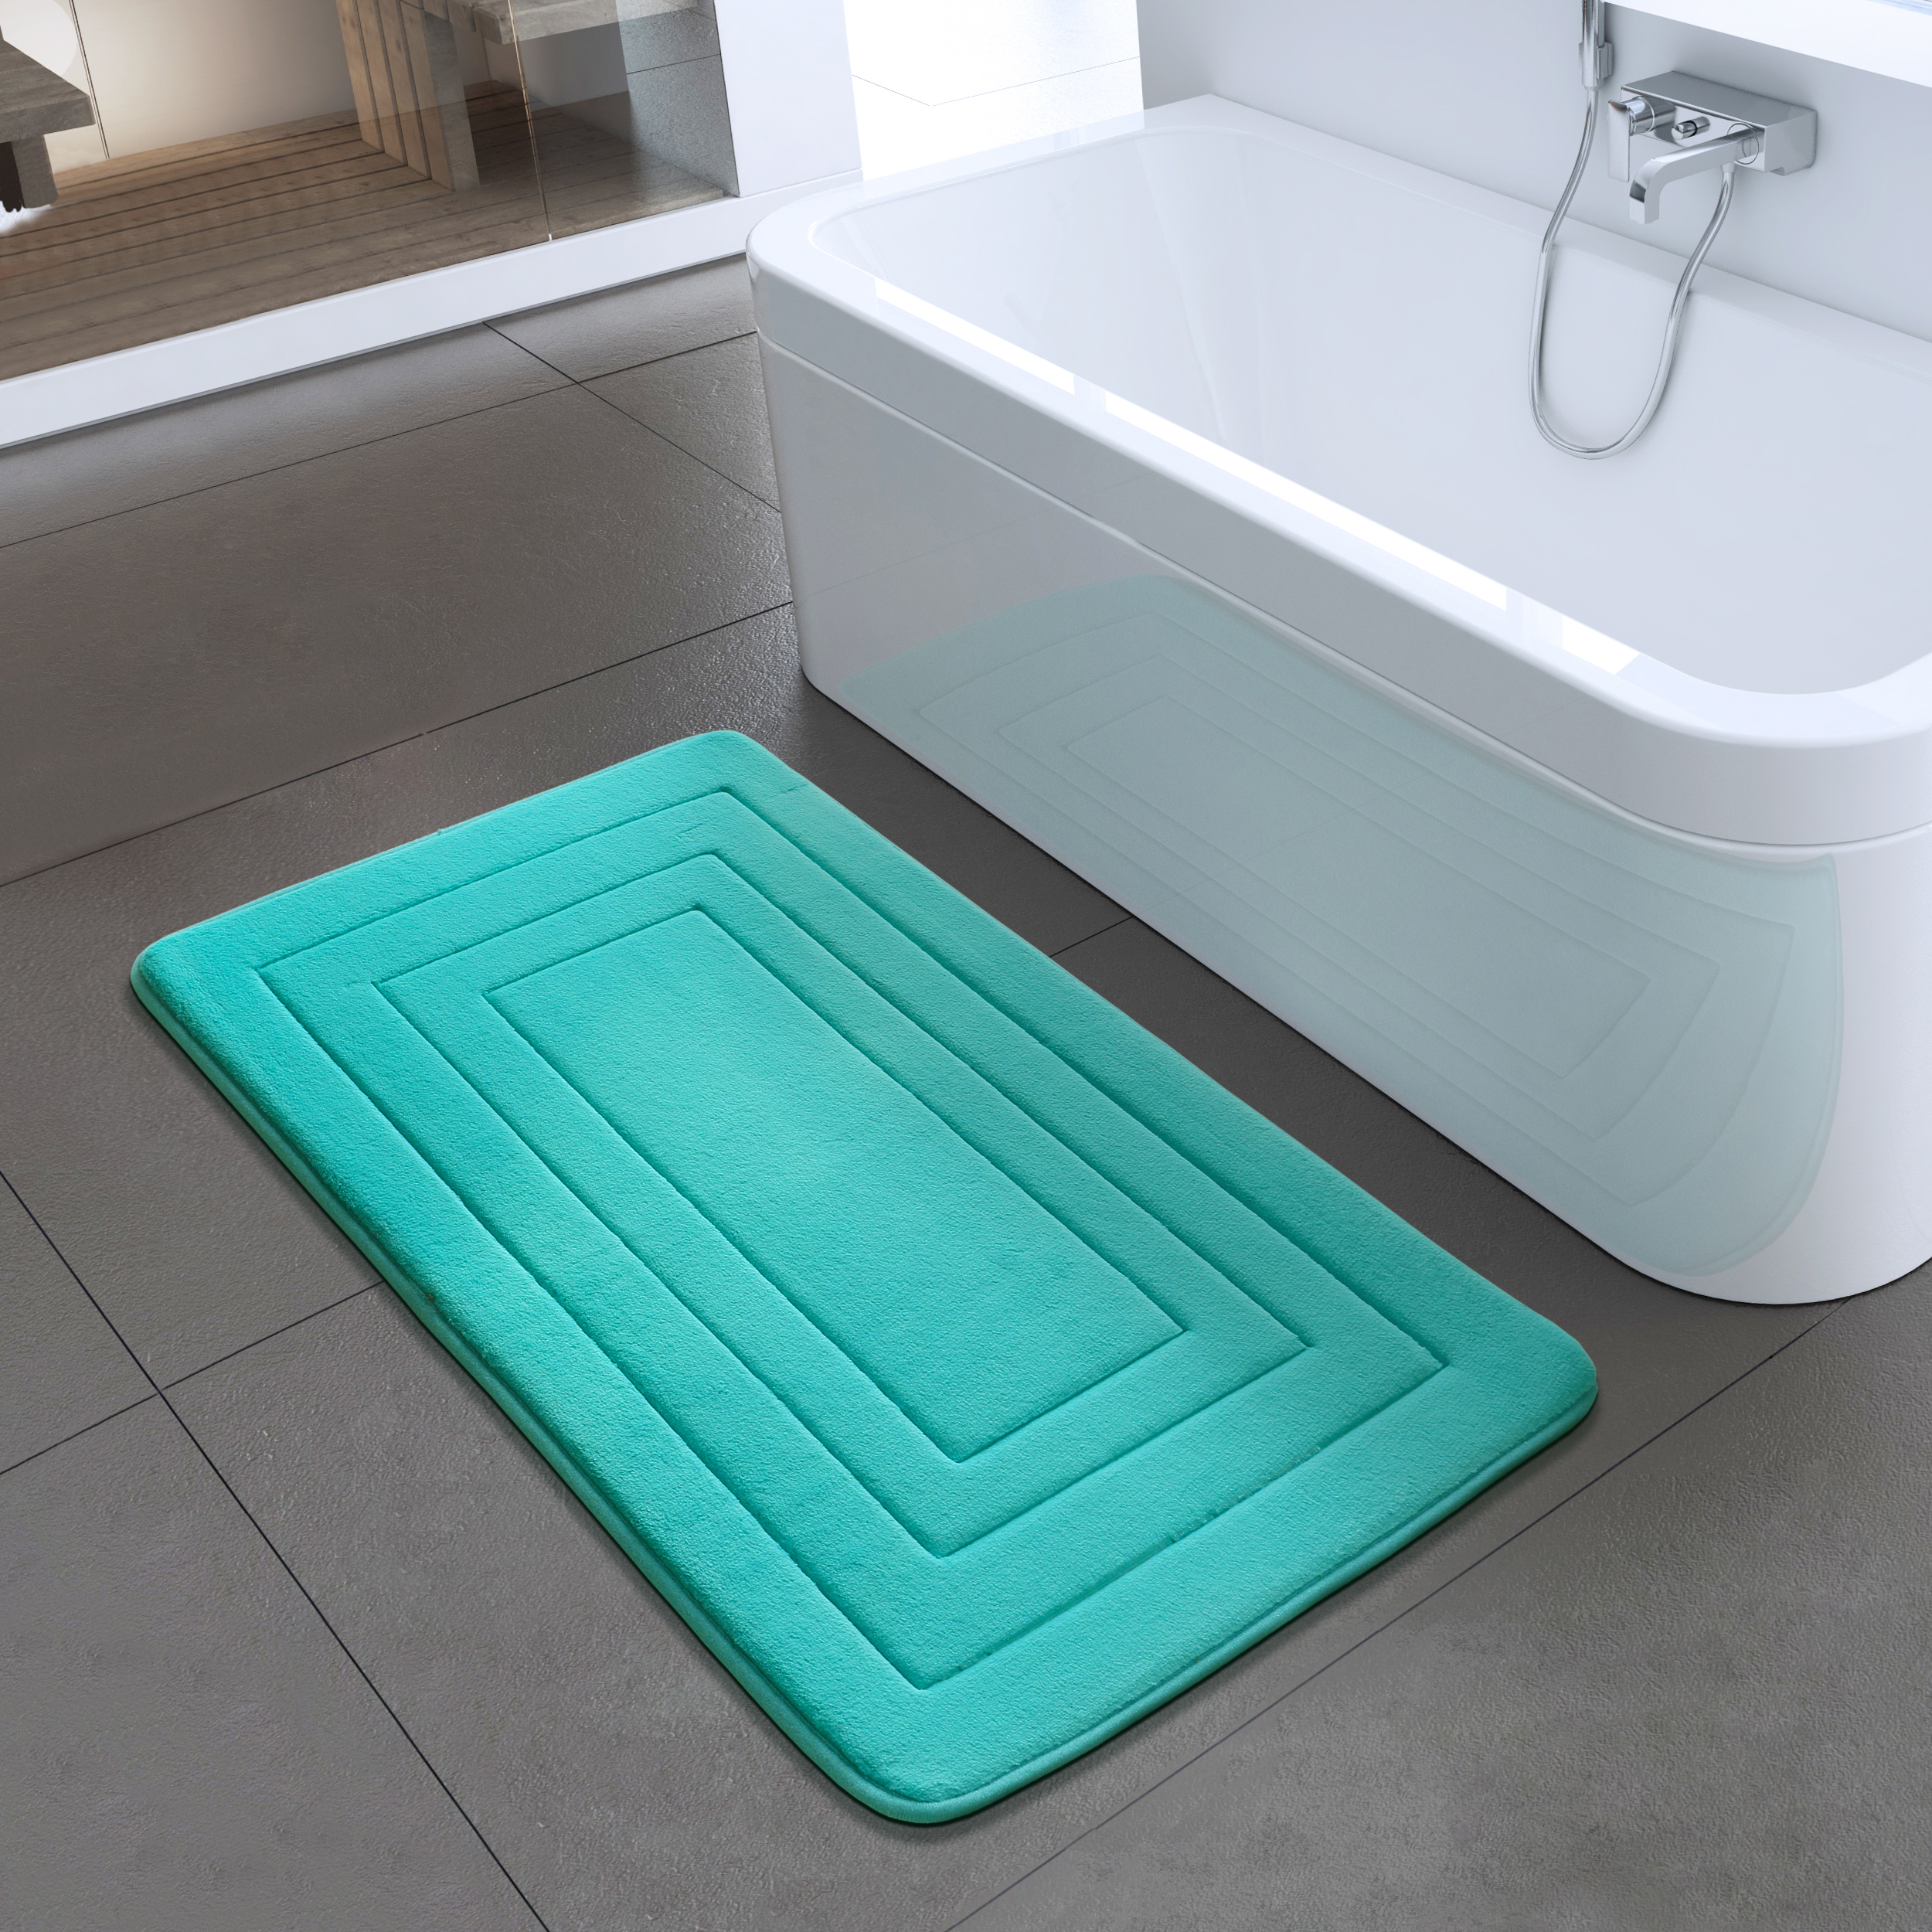 High Quality Bath Mat Bathroom Bedroom Non-slip Mats Foam Rug Shower Carpet for Bathroom Kitchen Bedroom 40x60cm 50x80cm ZA-003 6